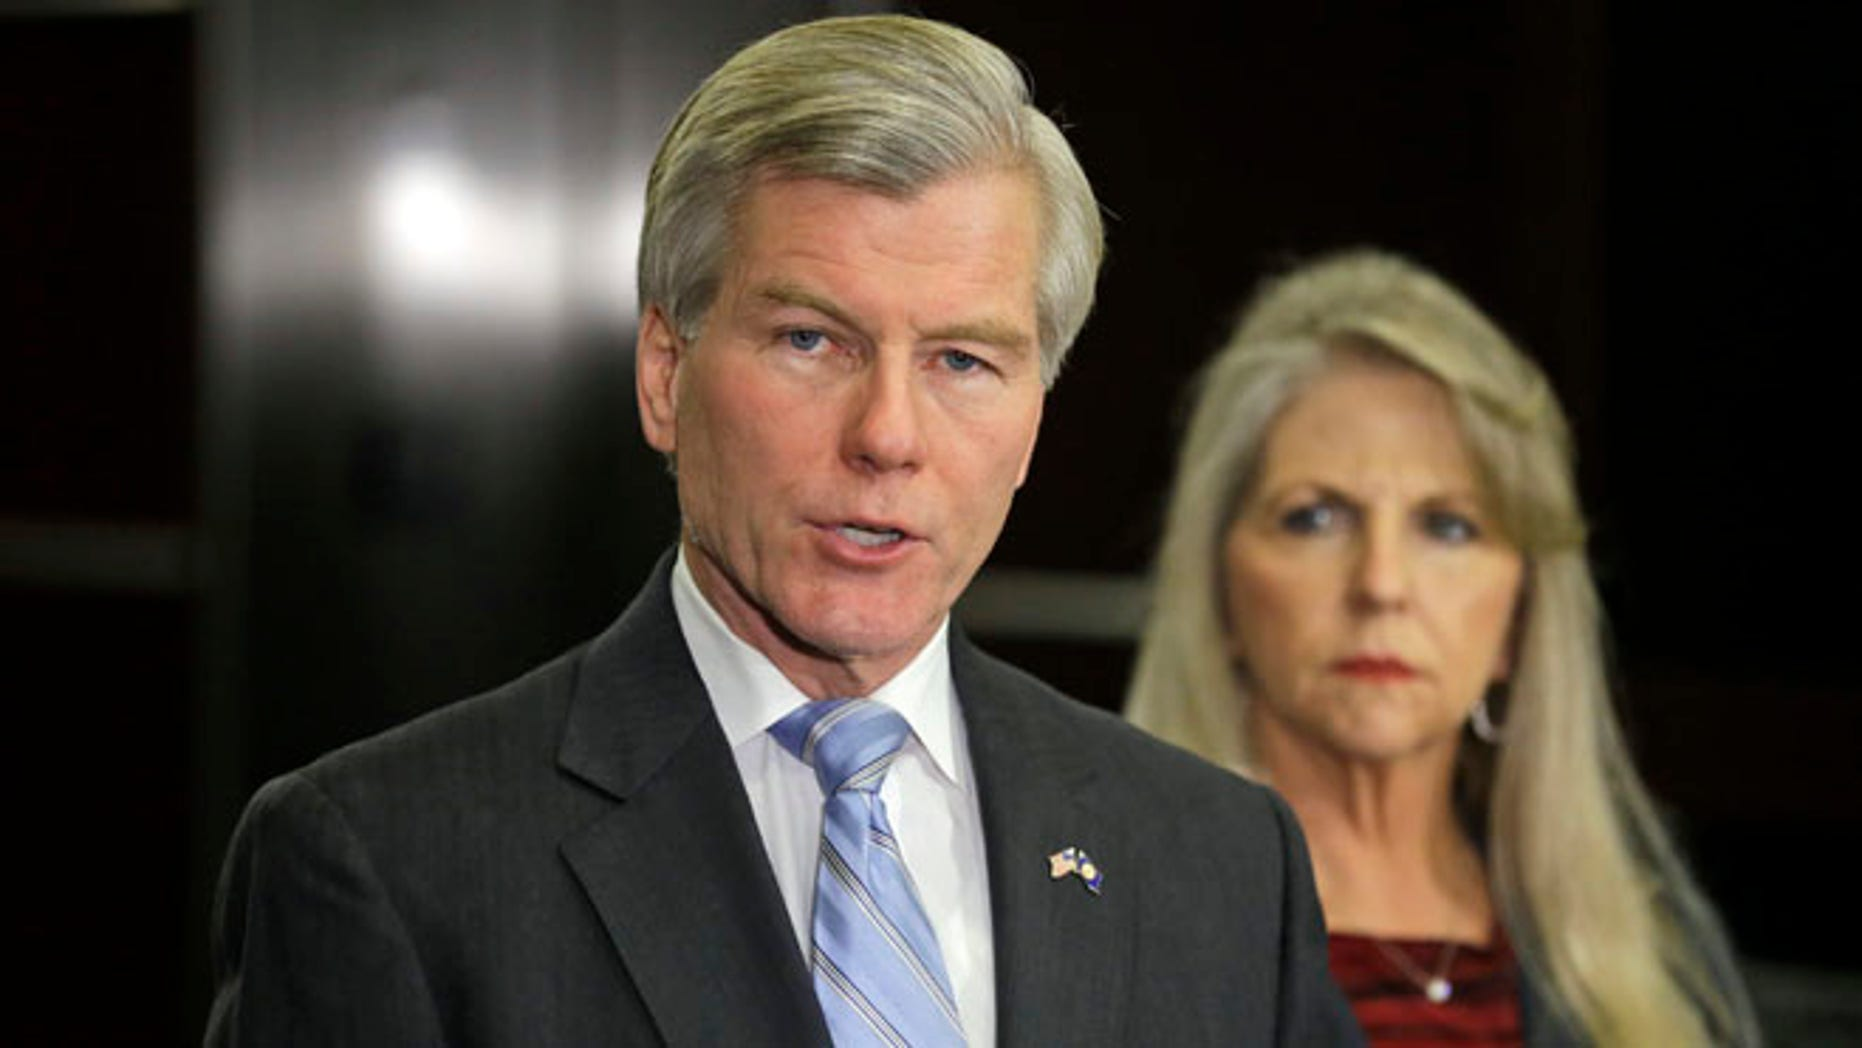 Jan. 21, 2014: Former Virginia Gov. Bob McDonnell speaks during a news conference in Richmond, Va., accompanied by his wife, Maureen.